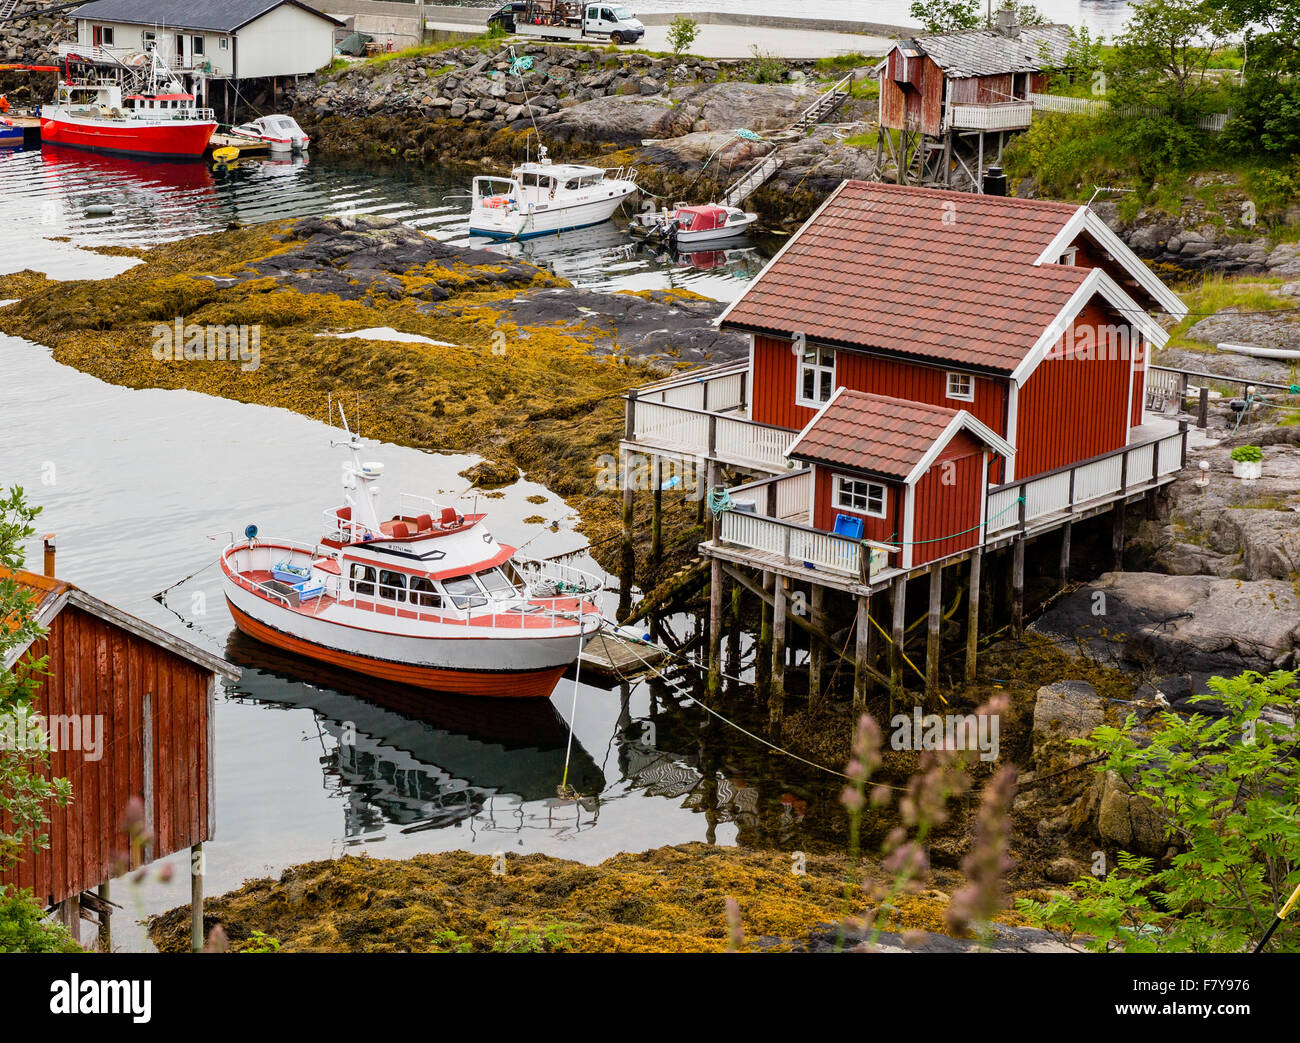 Small house on stilts and small fishing boat moored alongside at Moskenes in the western Lofoten Islands Norway - Stock Image